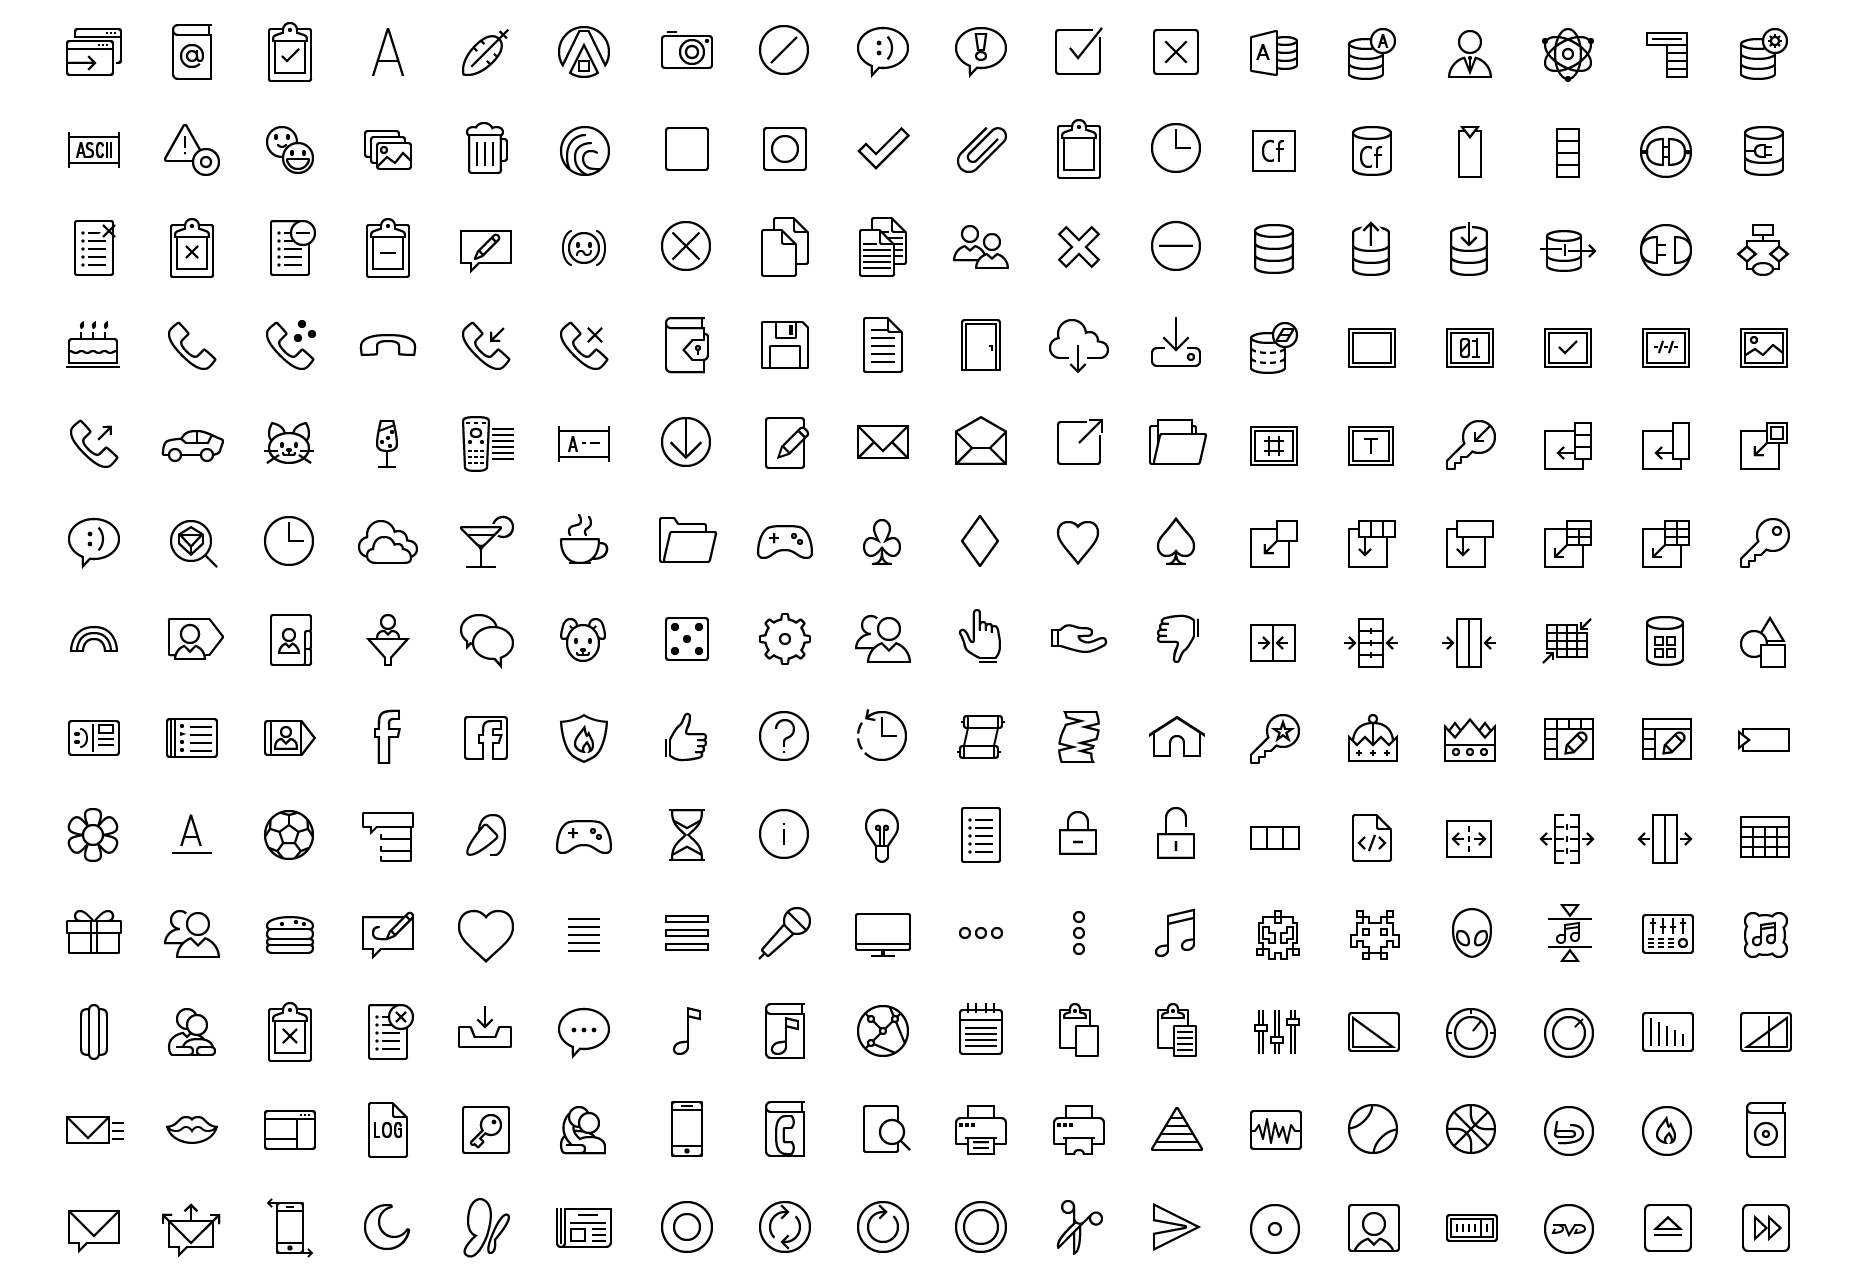 Outline & Filled Vector Icons Collection